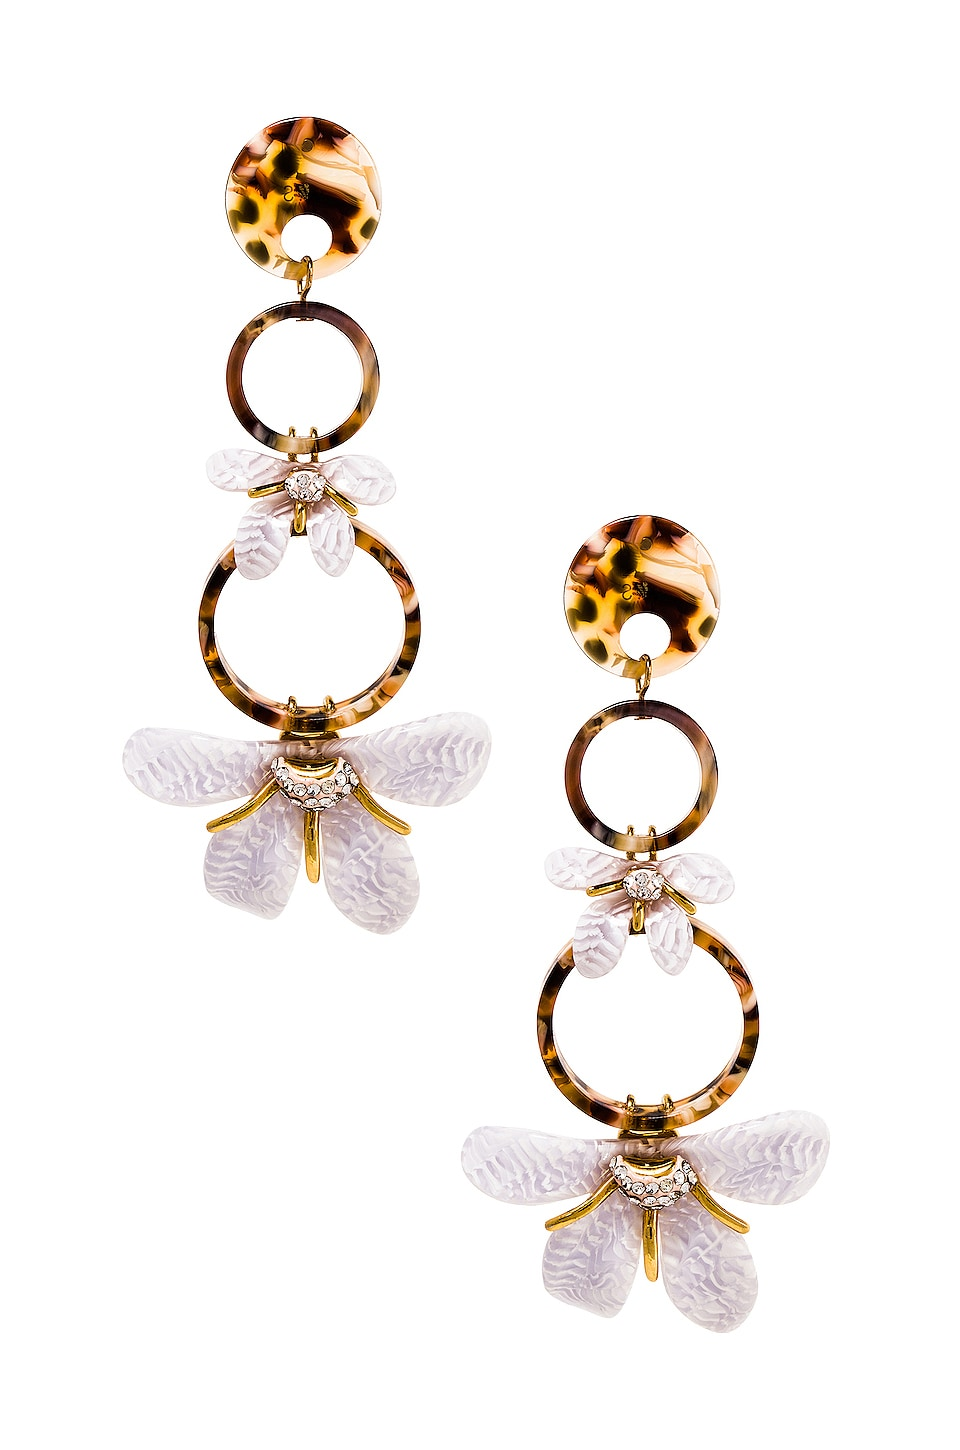 Lele Sadoughi Trumpet Lily Earrings in White Sand